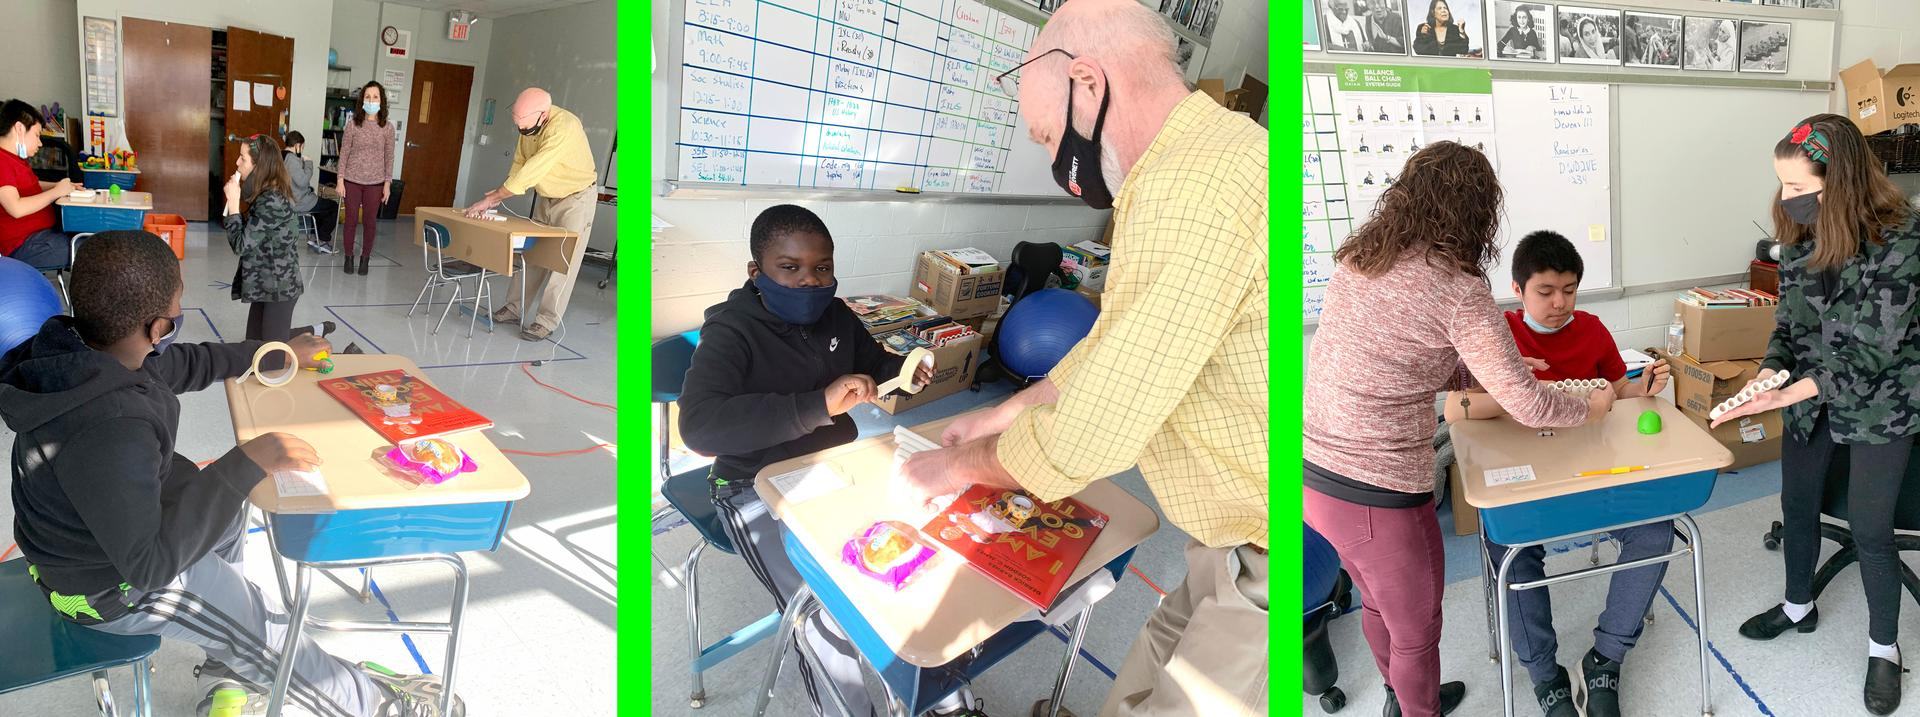 Three tile image, students and teachers working on a project